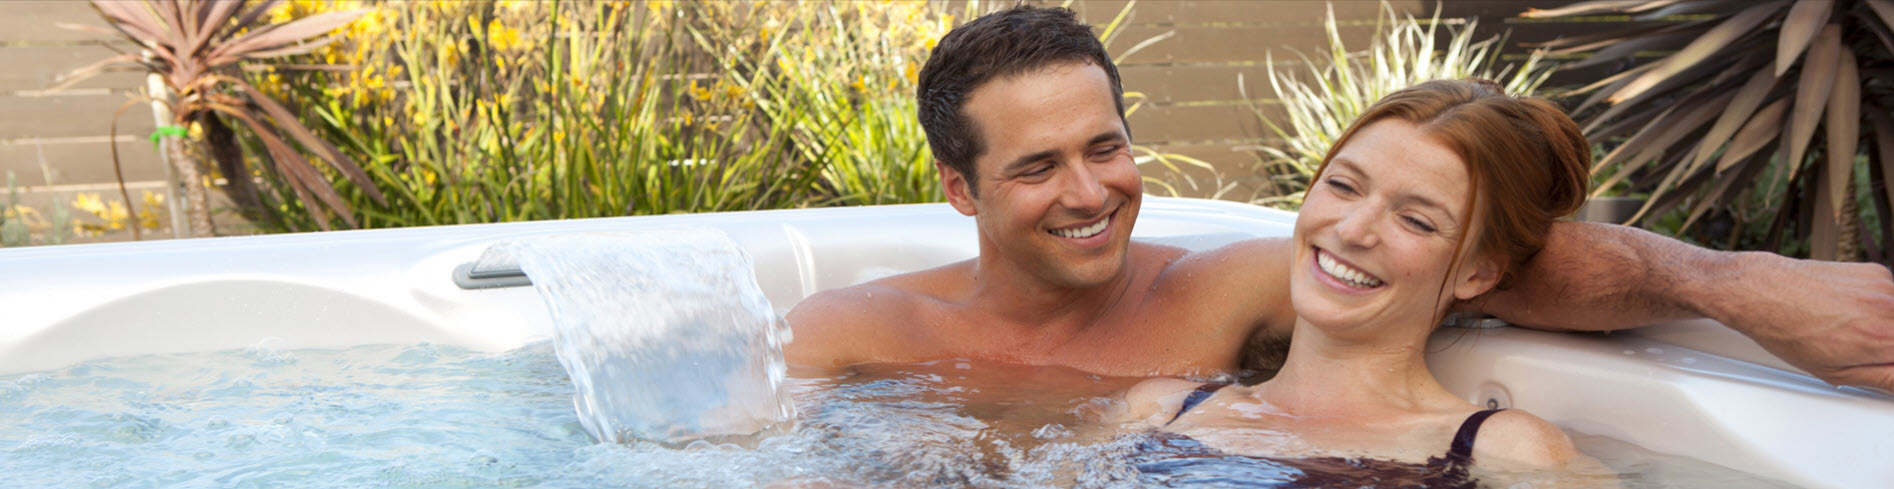 Urbandale Plug and Play Hot Tubs Dealer Shares 3 Ways to Stay Healthy This Year